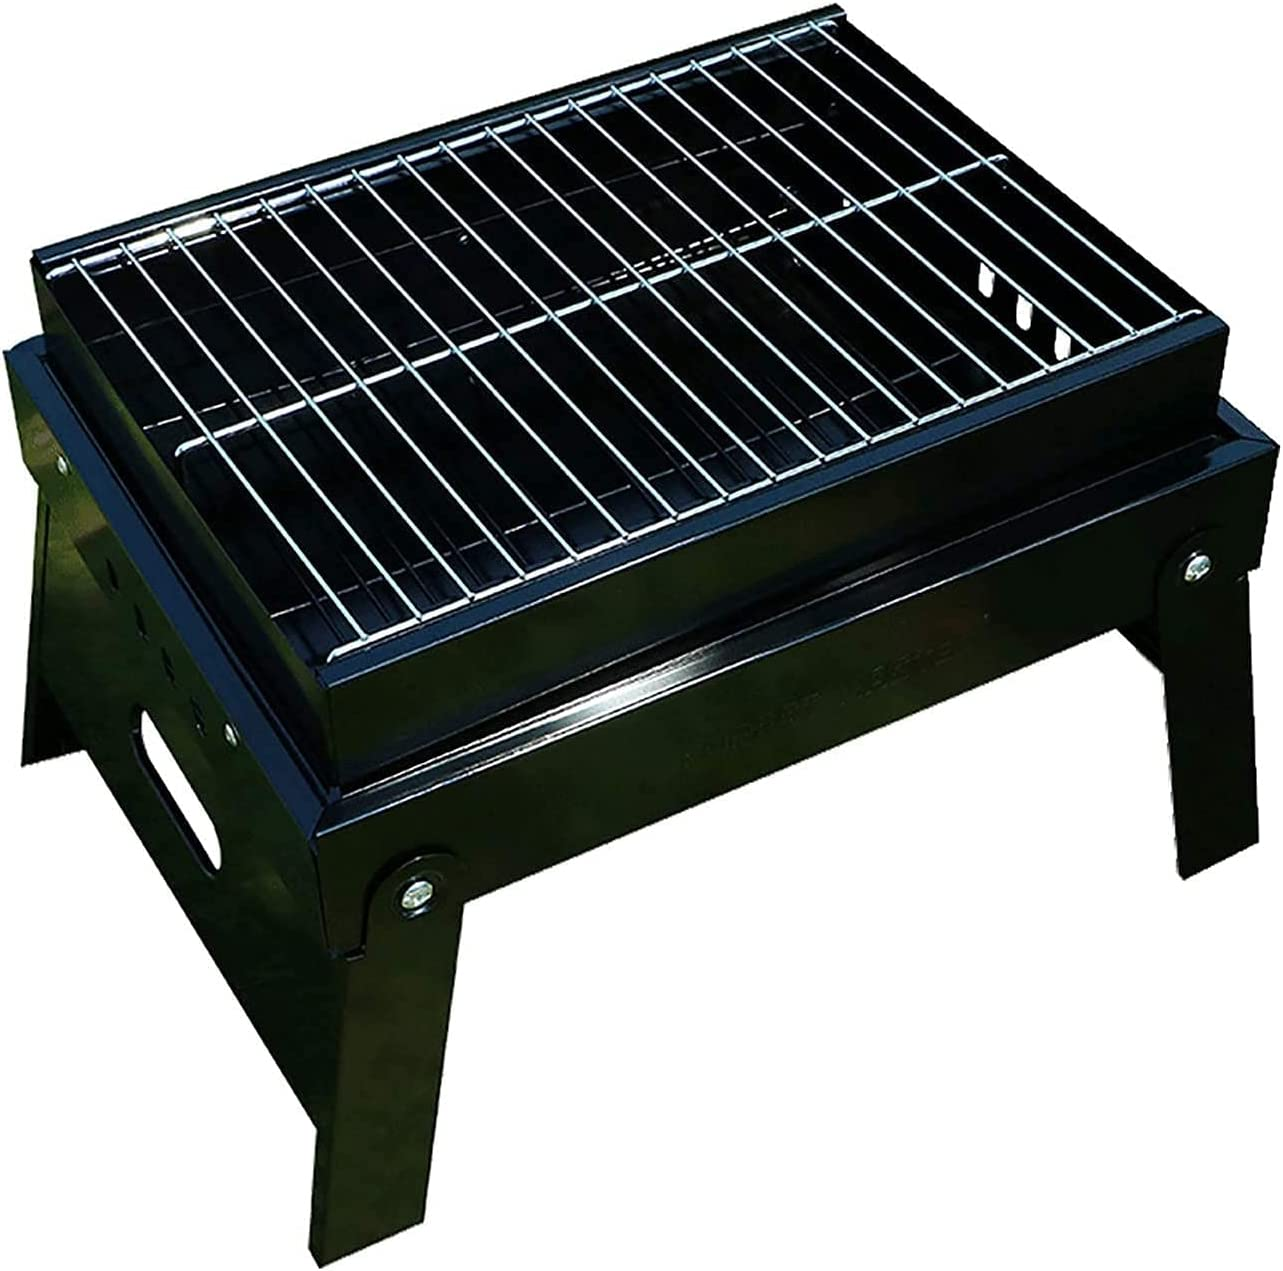 AACXRCR Selling and selling Barbecue Denver Mall tool set Portable BBQ Iron Mini Size Grill Fol